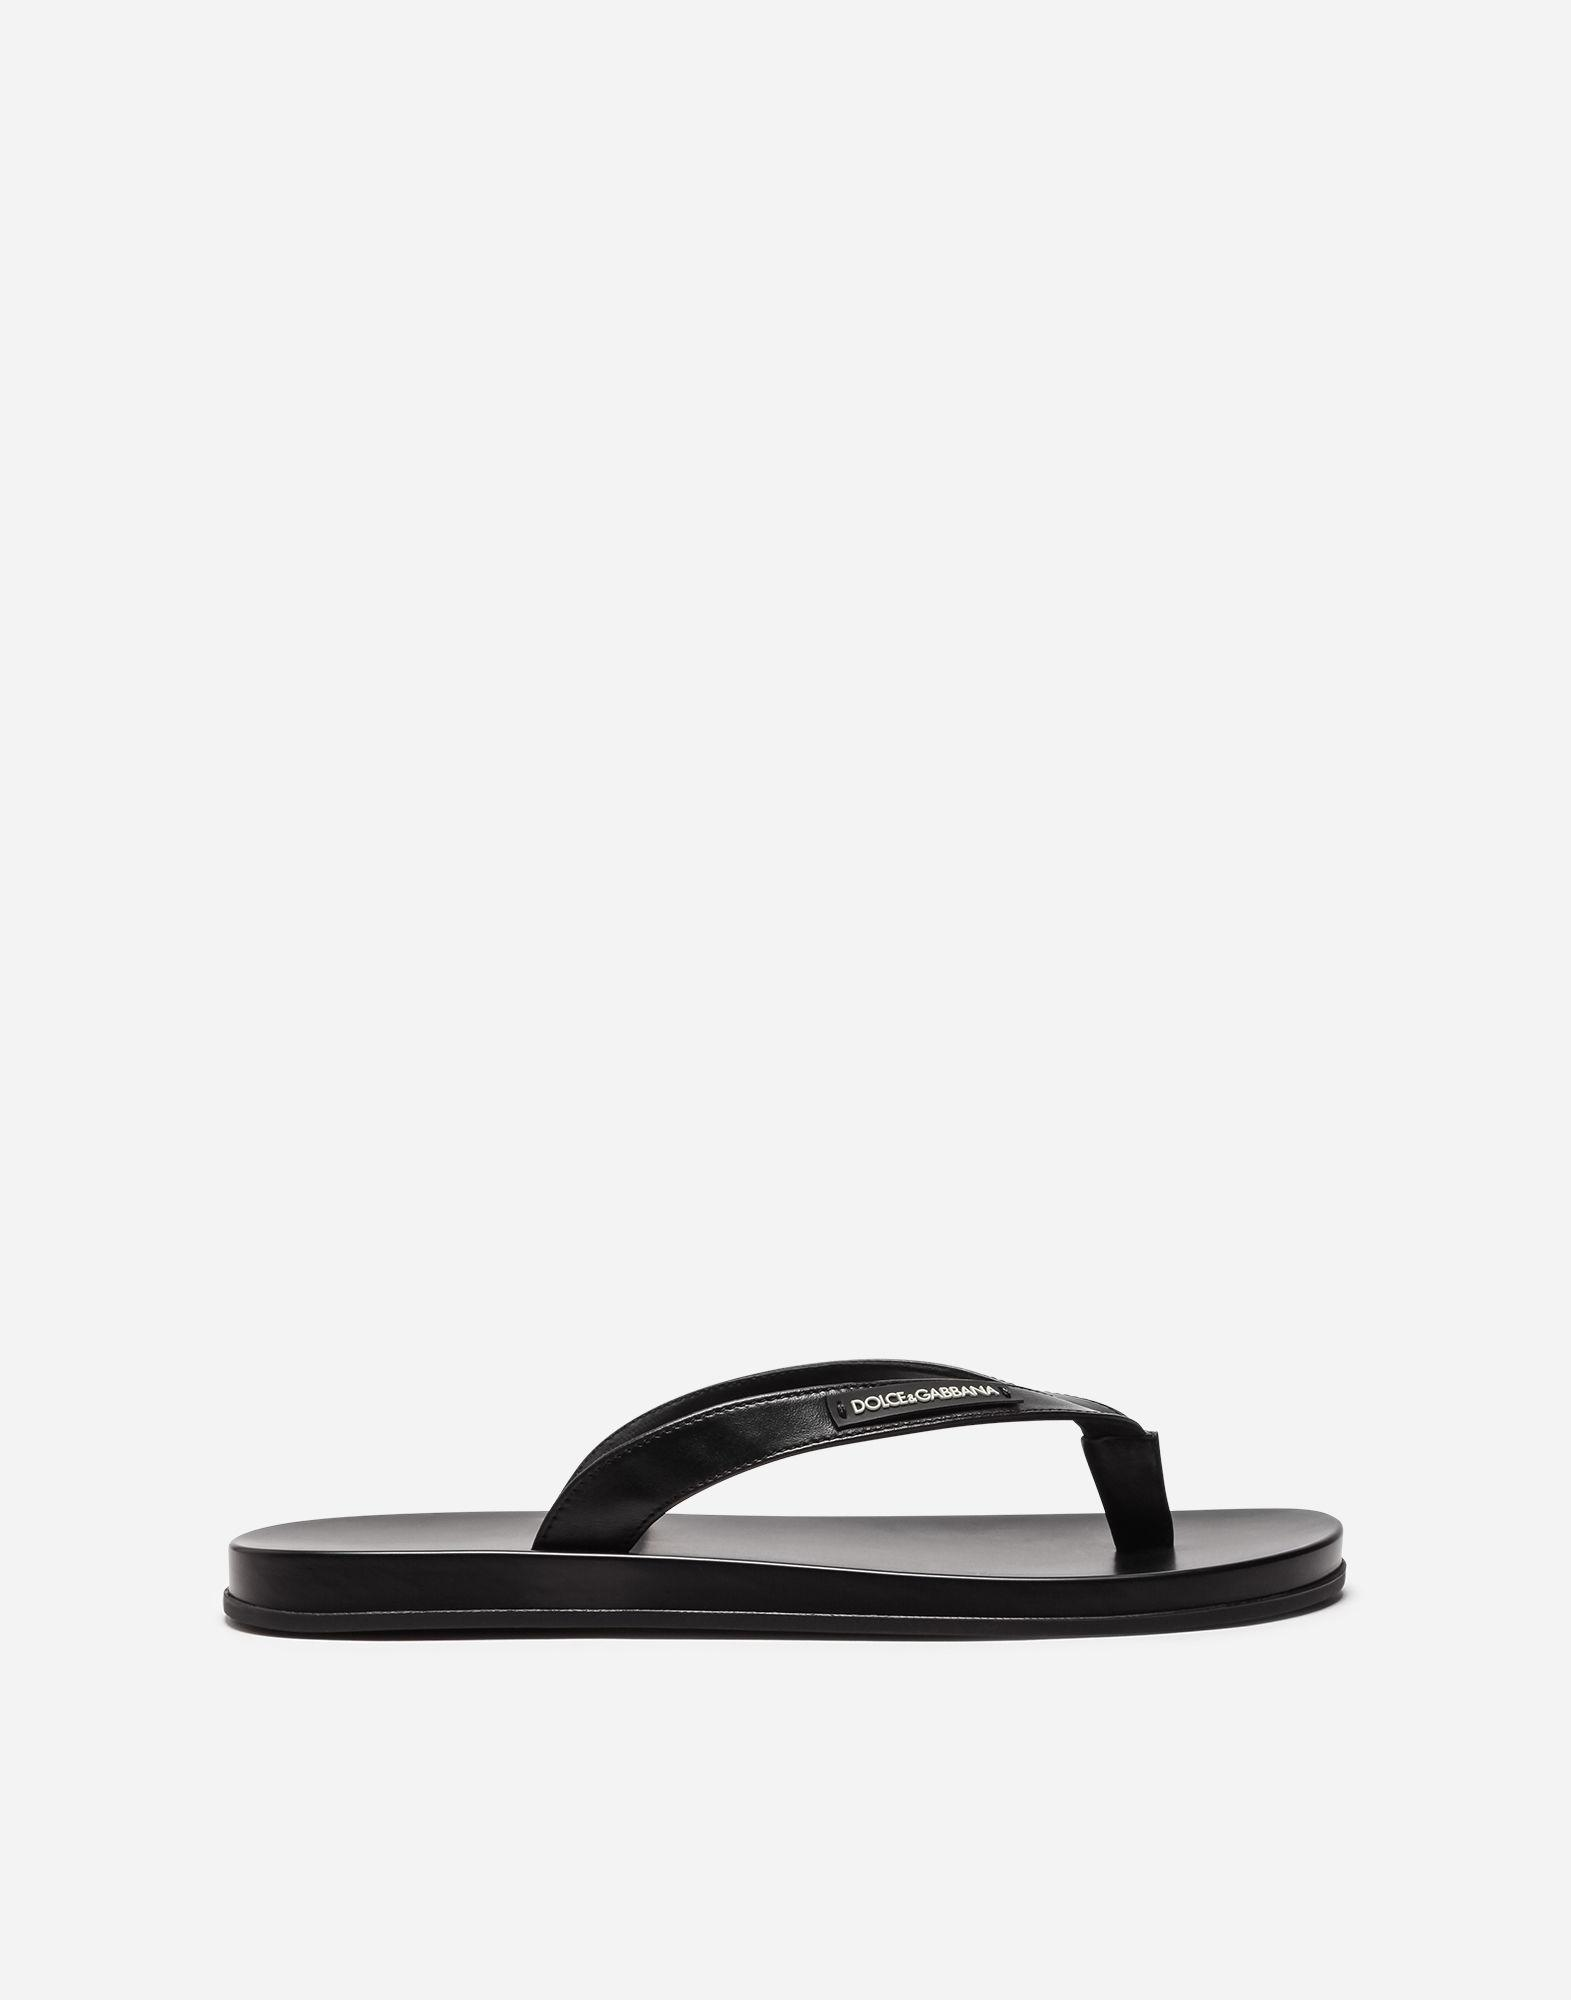 Dolce & Gabbana Thong Sandals In Rubber And Nappa Calfskin In Black